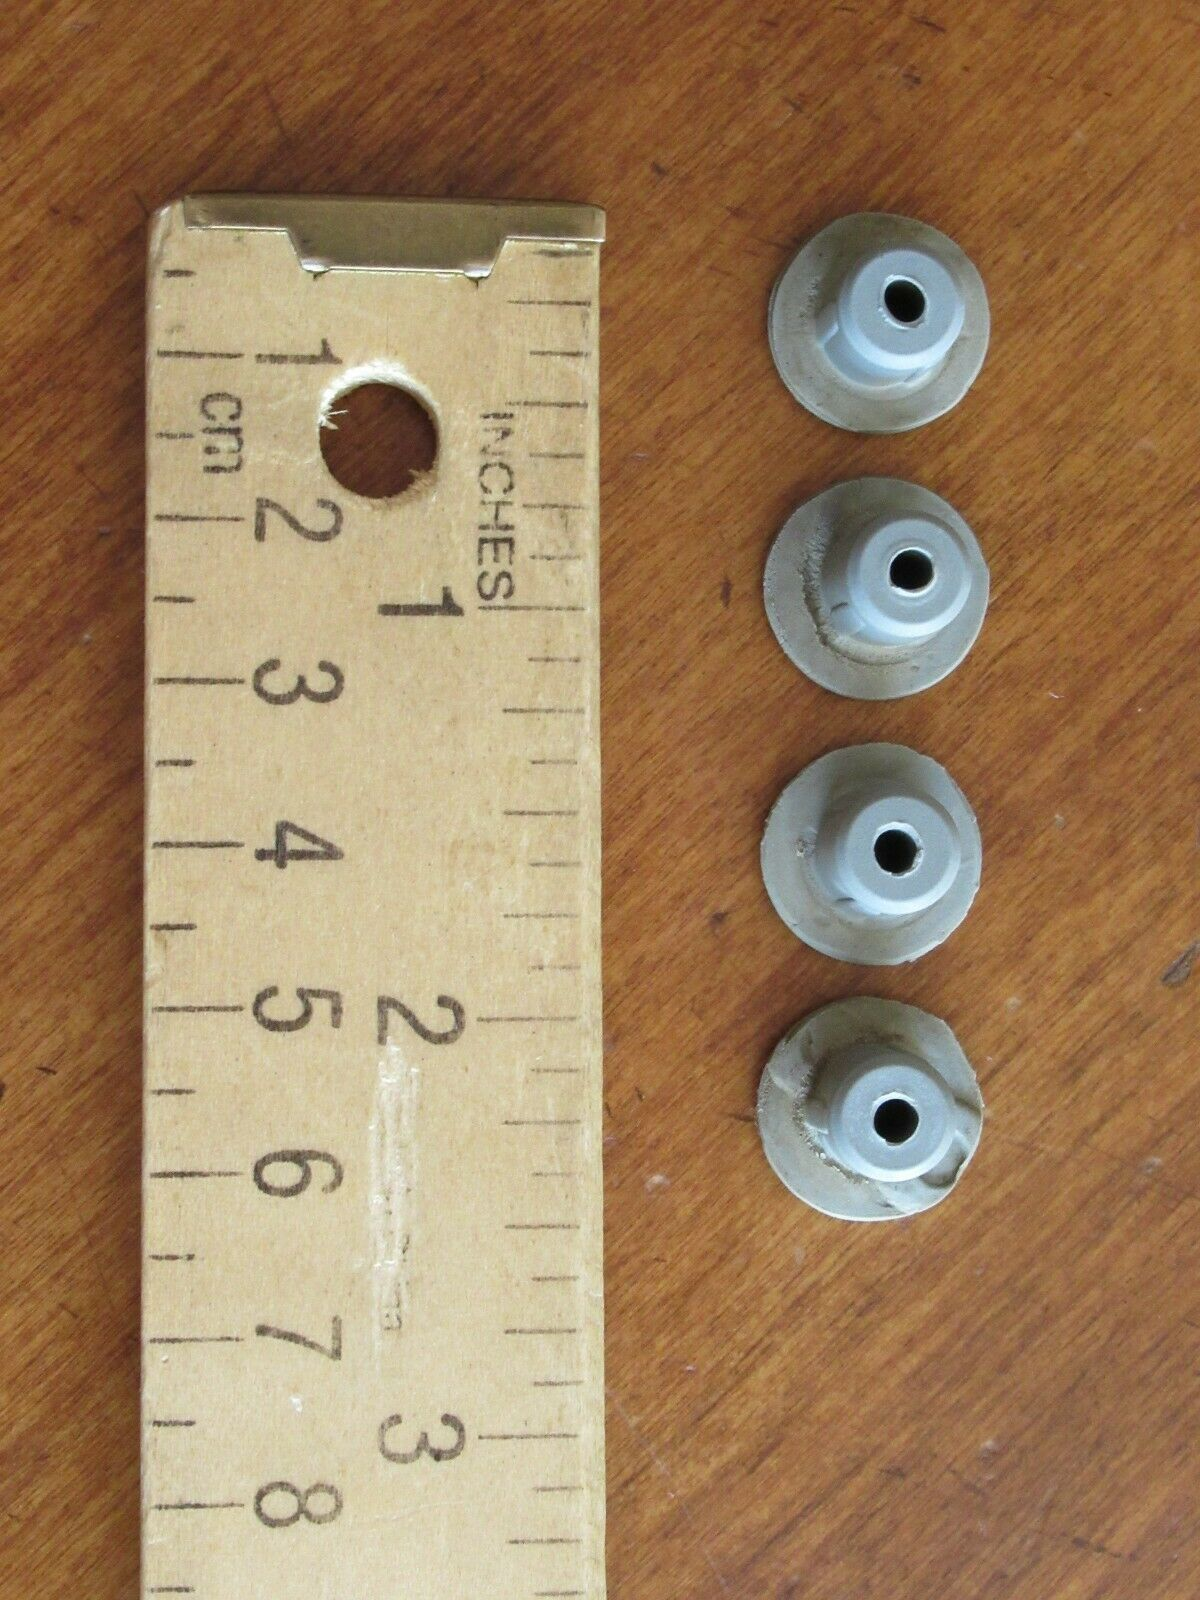 Krups Espresso/Coffee XP1600 Replacement Part: Lot of 4 Rubber Feet Non Skid  - $8.49